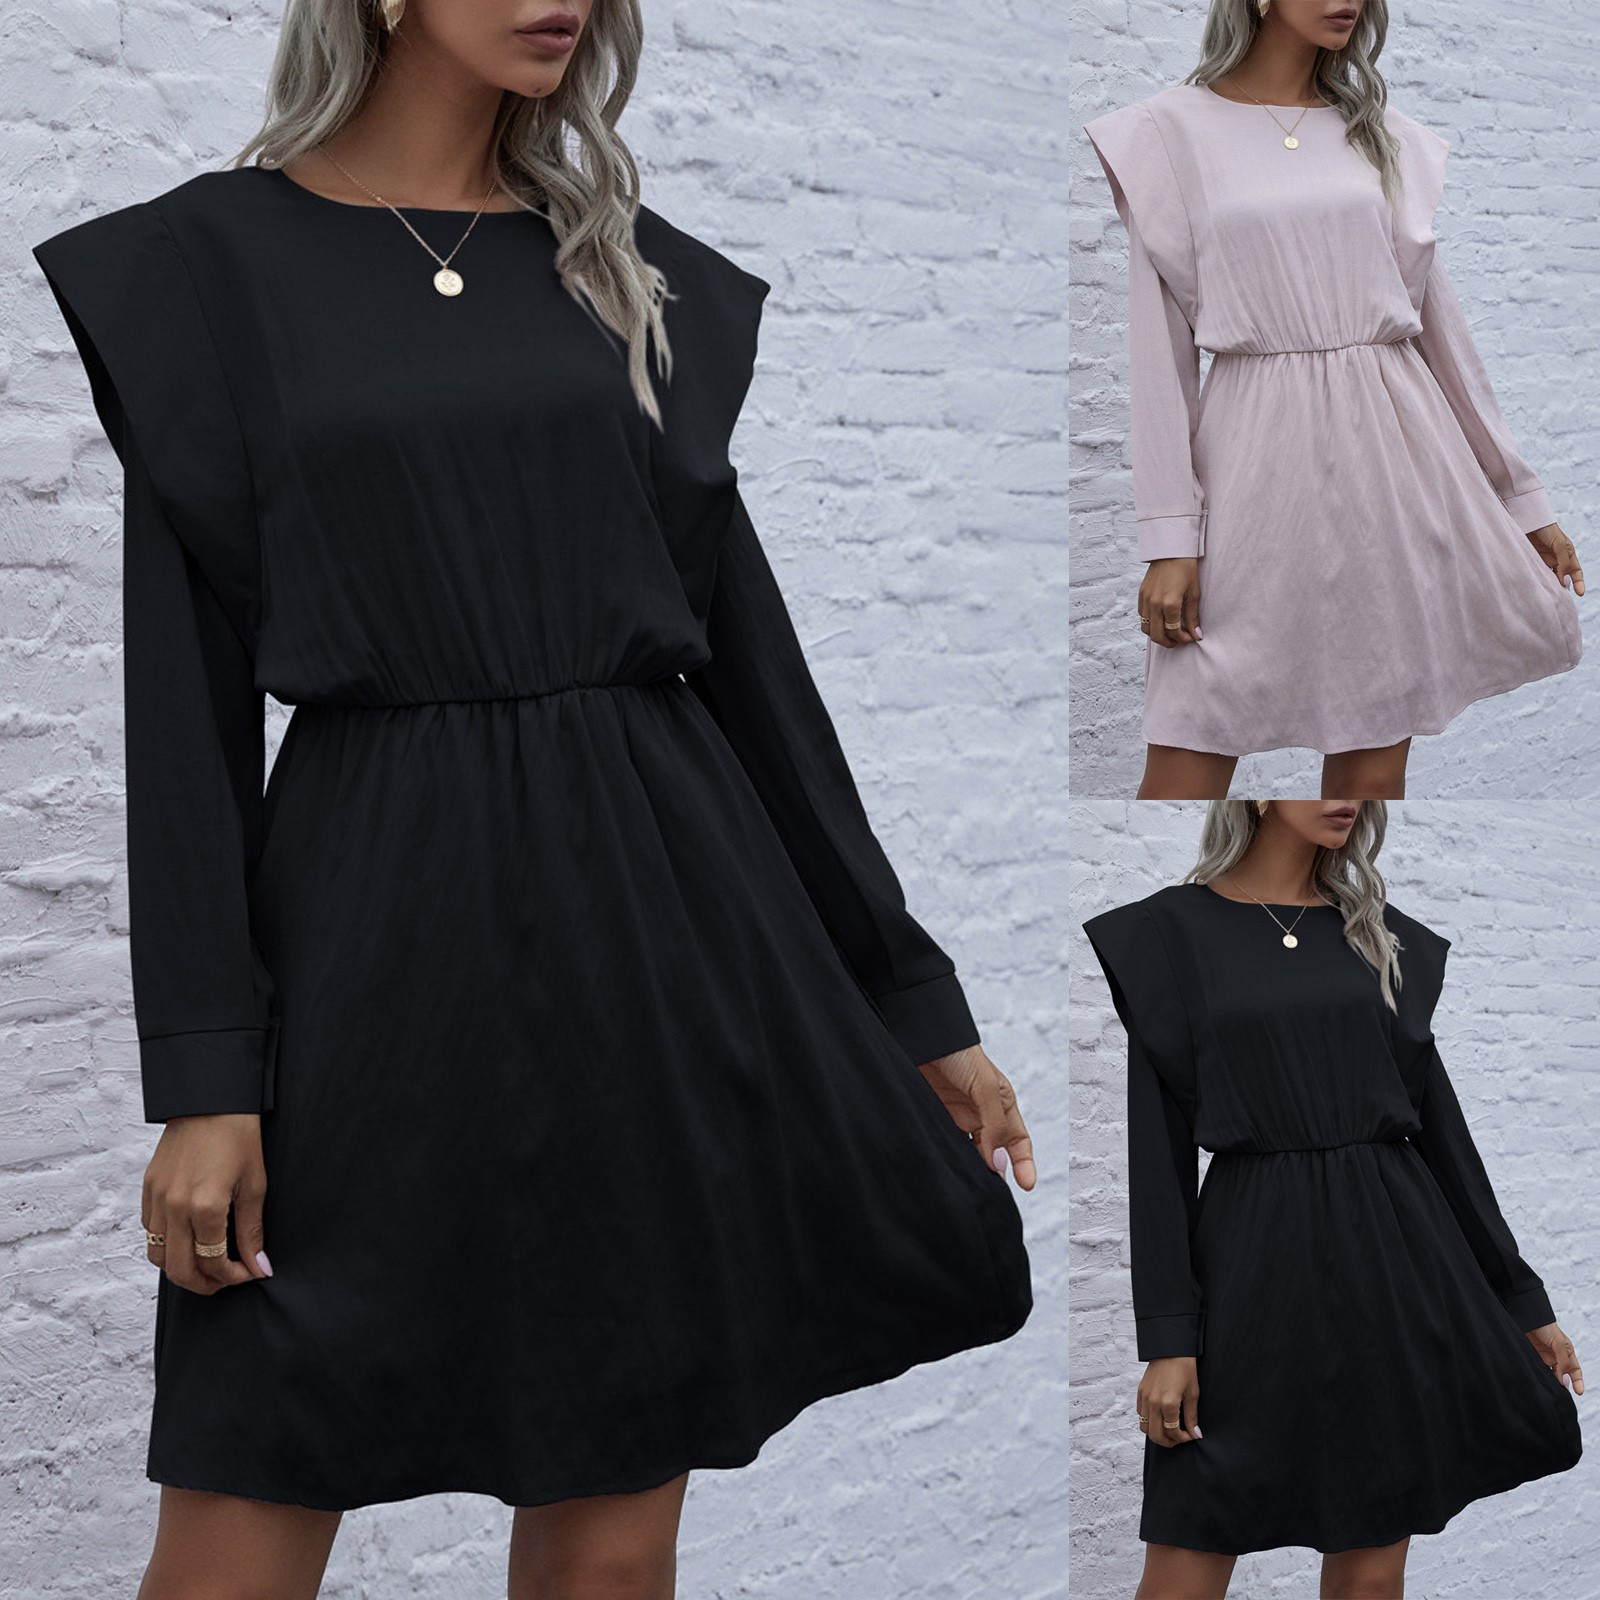 2021 Women's Fashion Dresses Casual Solid Color Round Neck Padded Long Sleeve Knitted Cotton Black Dress Damenbekleidung